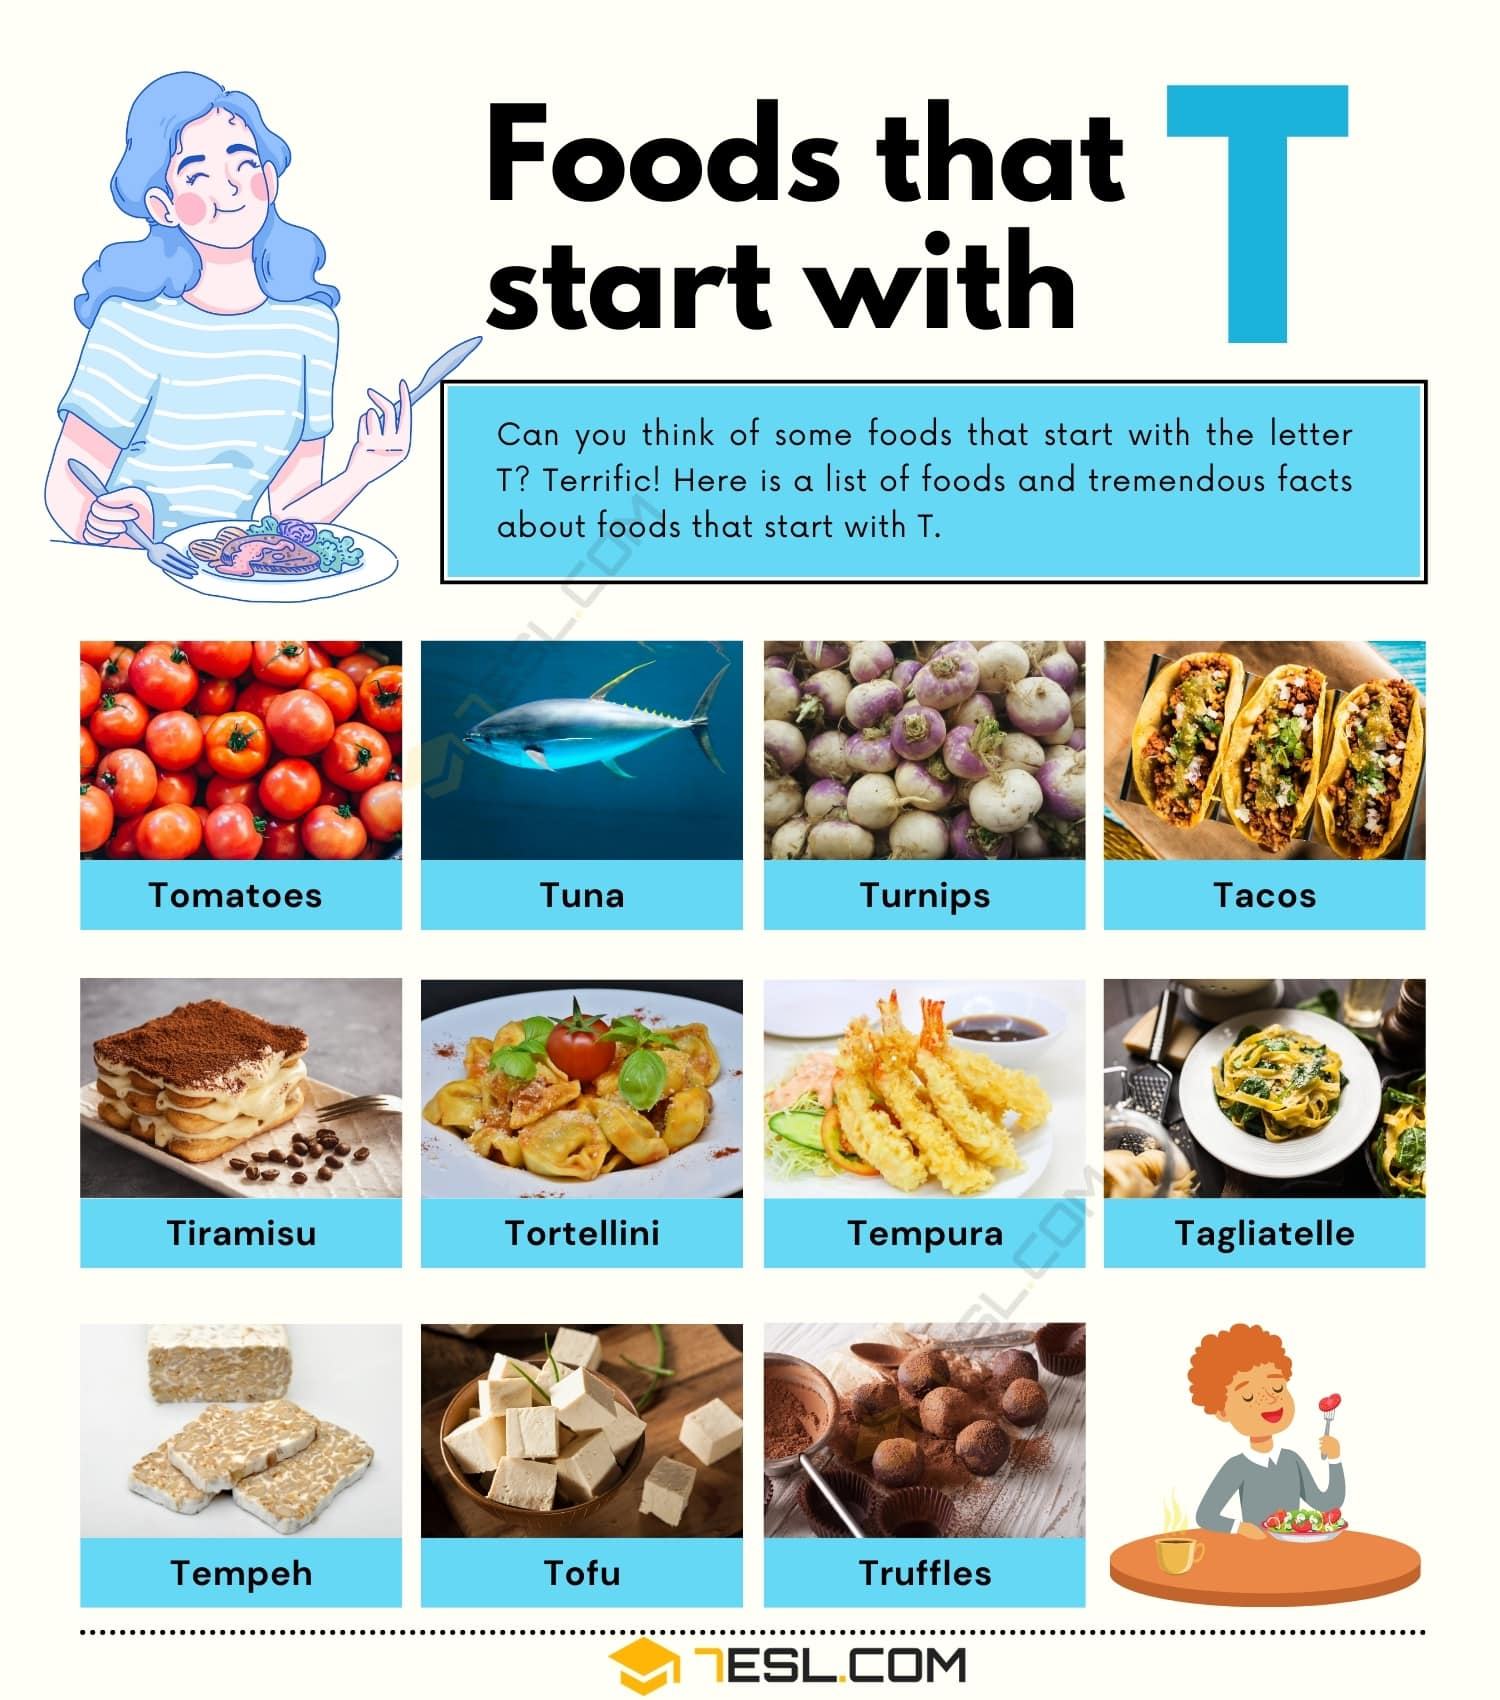 Foods That Start With T: 11 Types of Delicious Food Starting with T